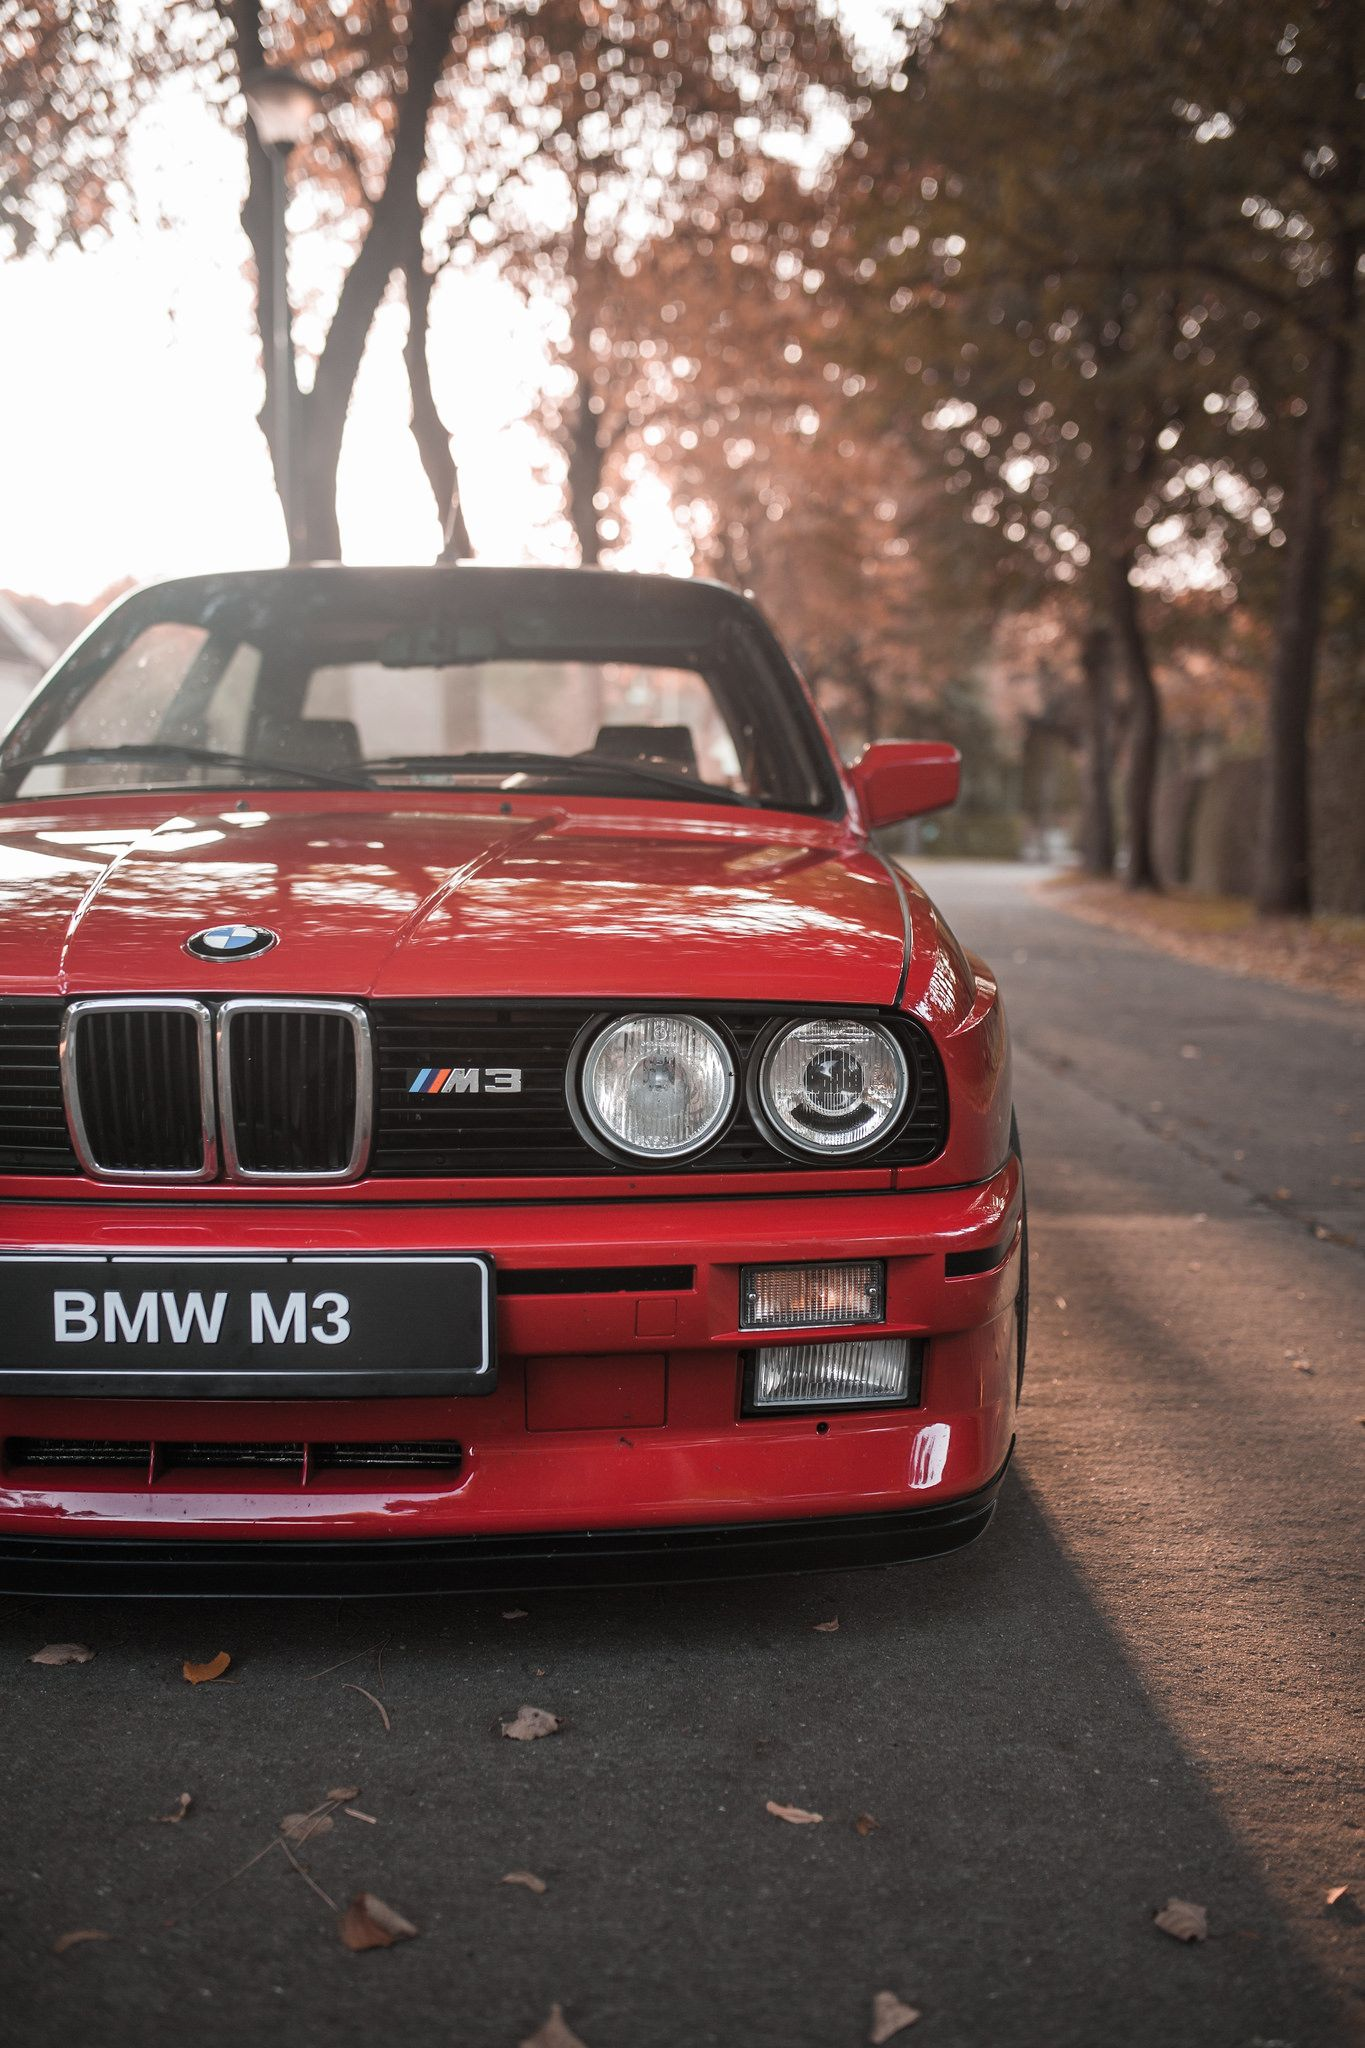 Bmw E30 M3 Mperformance Euro Cars Pinterest Bmw Bmw E30 And